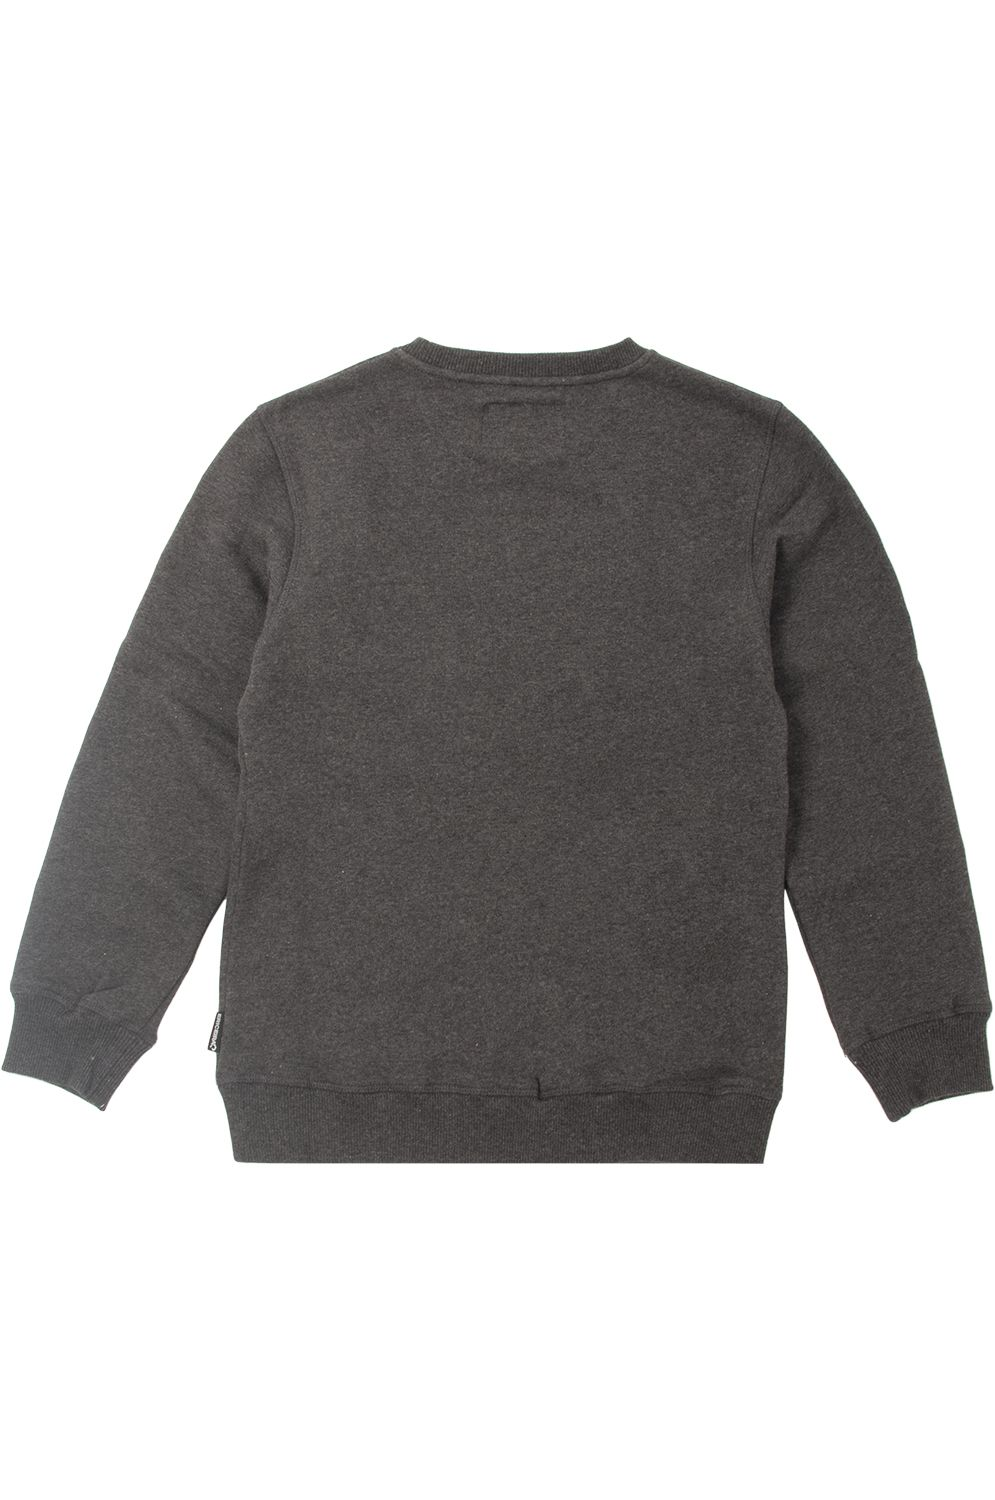 Sweat Basica Ericeira Surf Skate ROUND IT Charcoal Heather